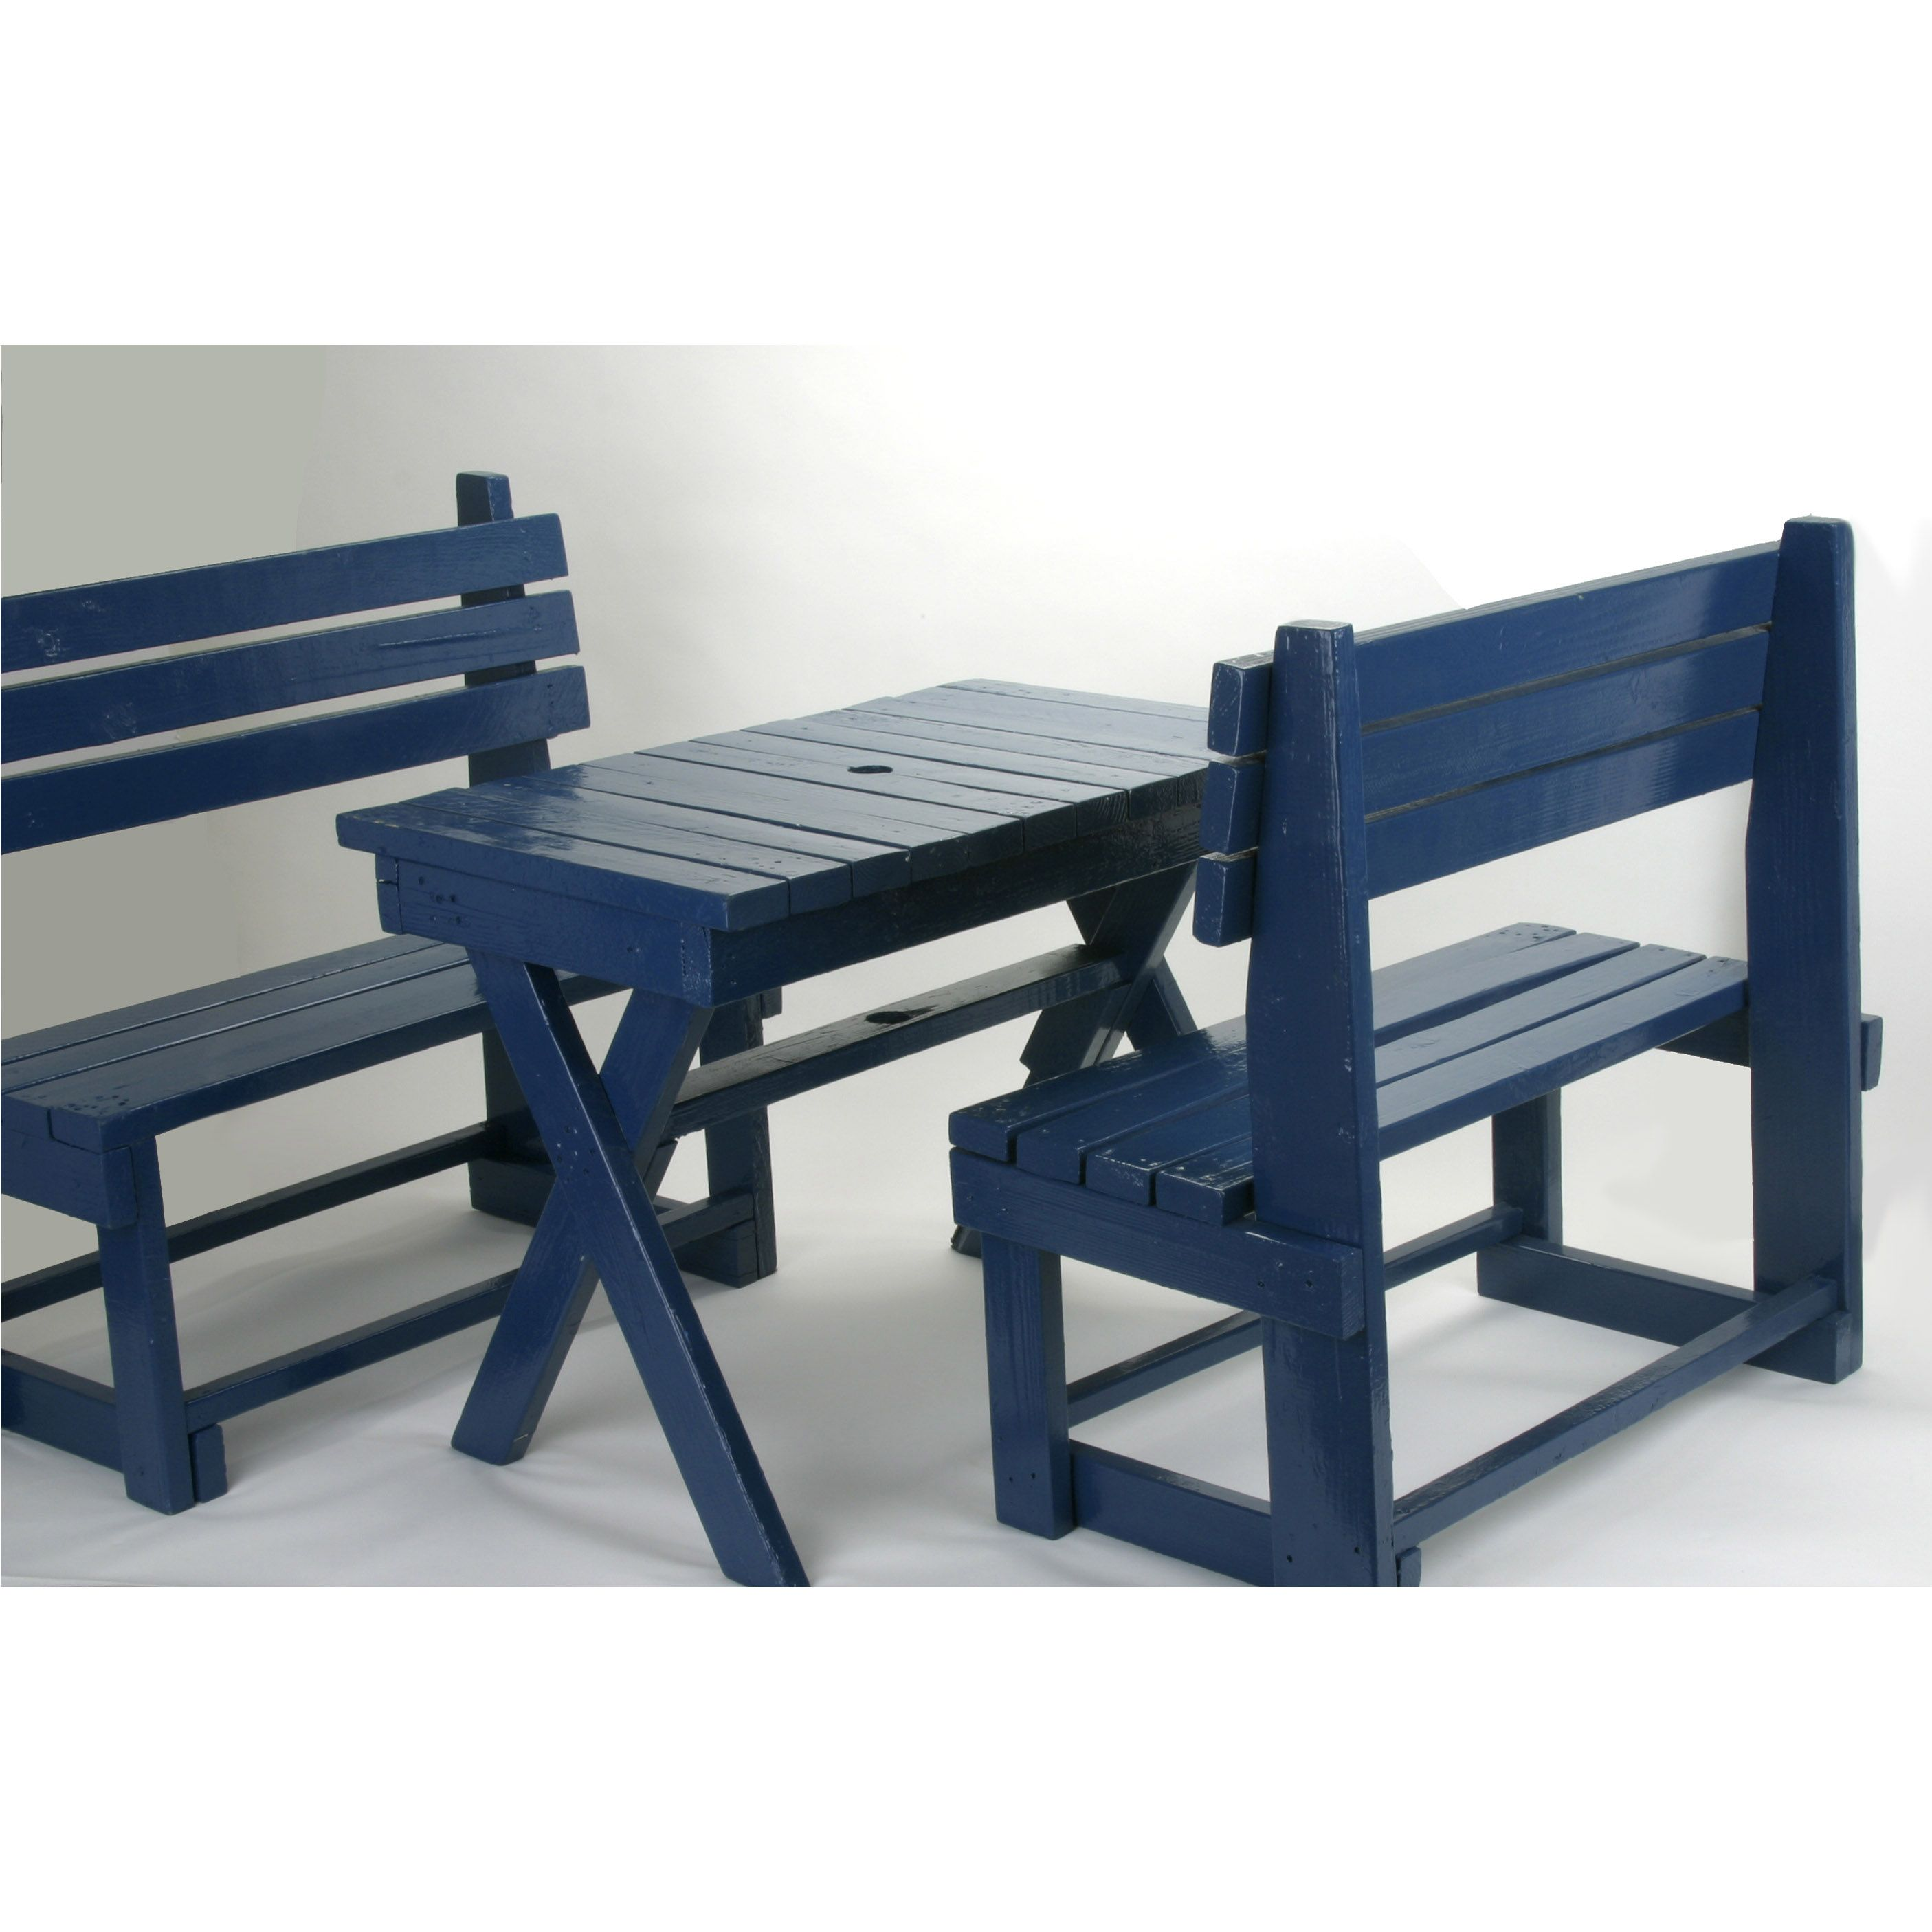 Strange It Would Be Fun To Make This Outdoor Kids Table And Bench Creativecarmelina Interior Chair Design Creativecarmelinacom